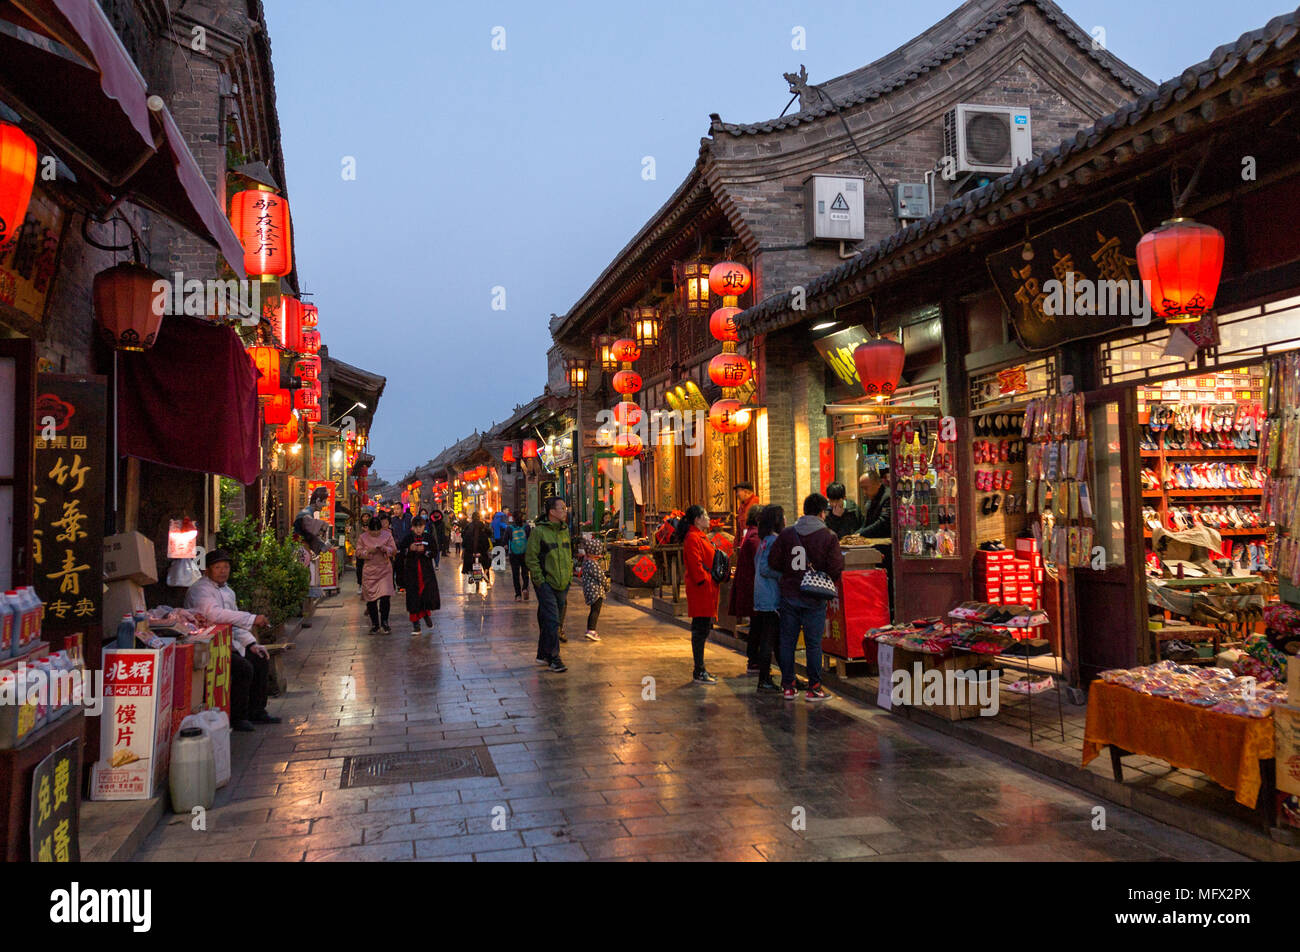 Tourists and local people in the ancient city of Pingyao in central China, Asia. Stock Photo